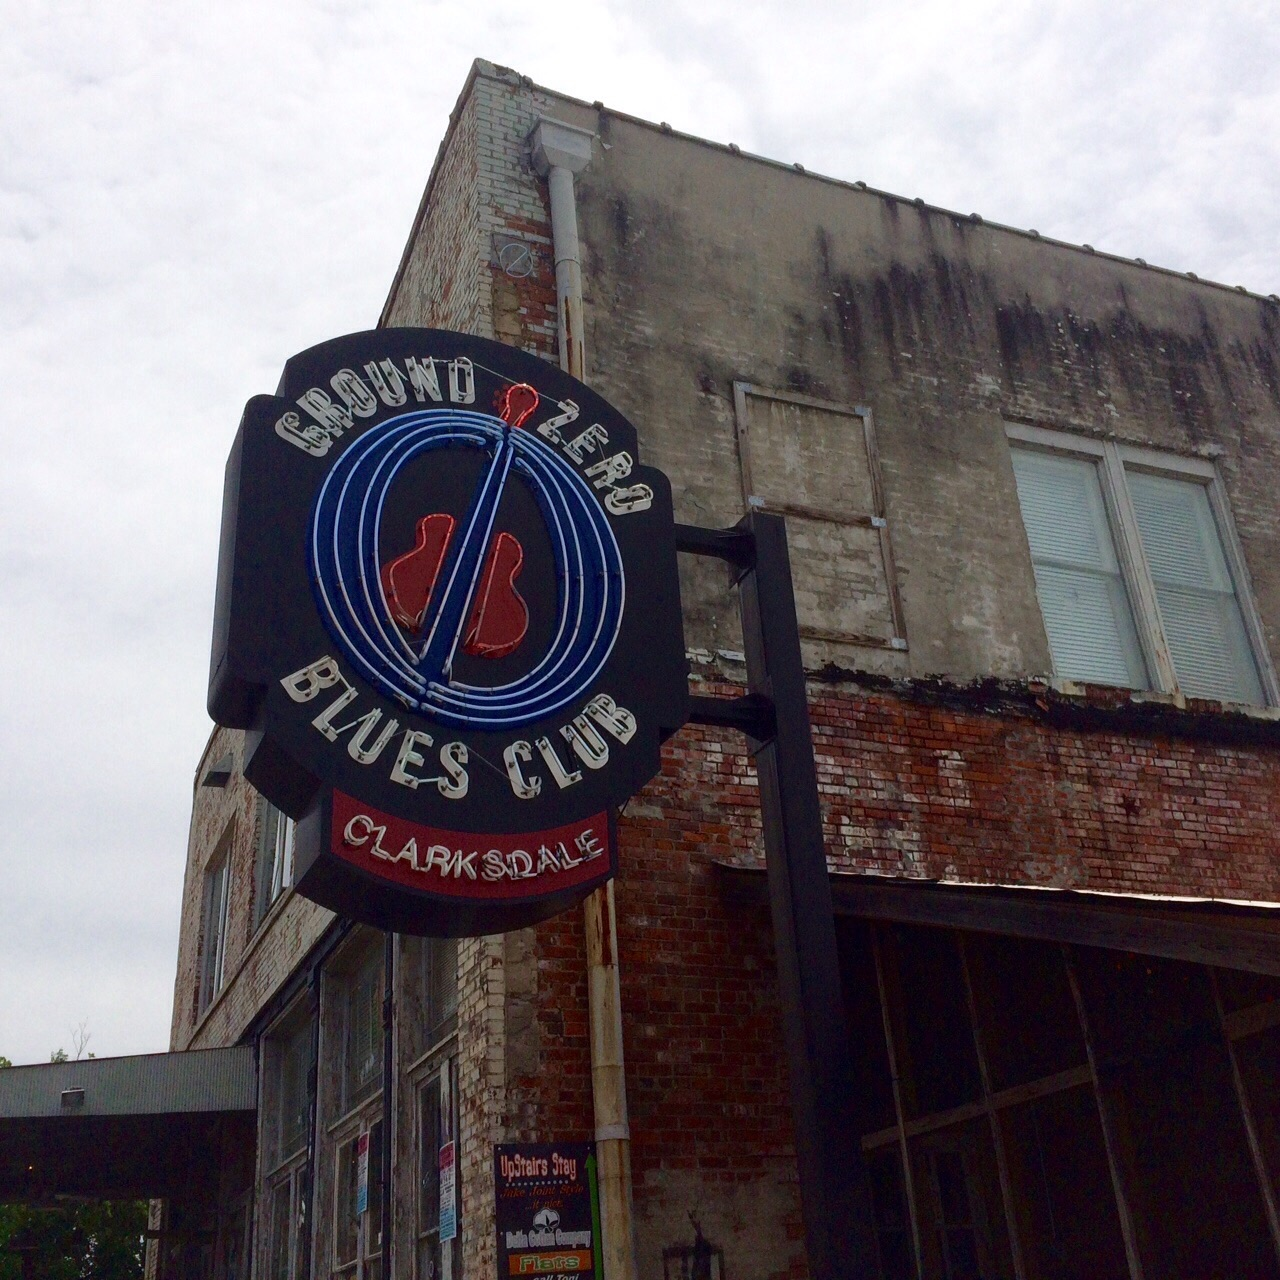 with only 18,000 residents, clarksdale, mississippi is the blues capital of the world